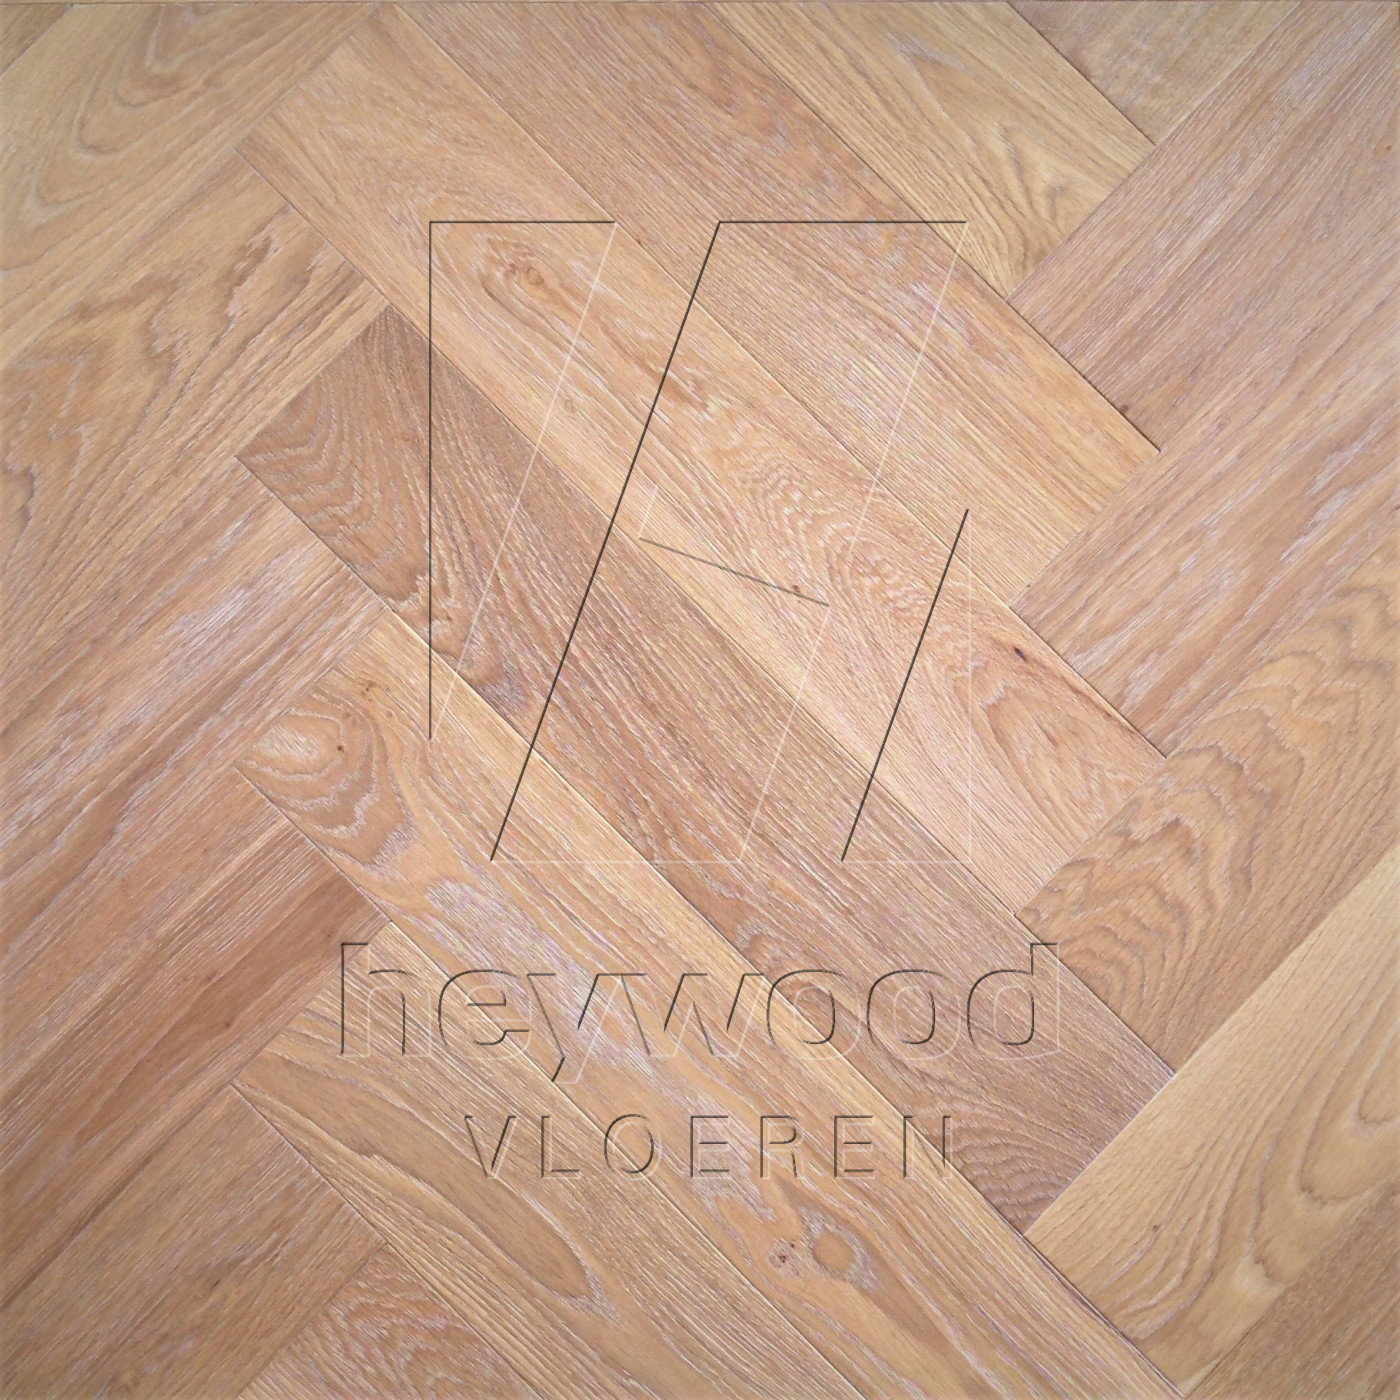 Herringbone Danube in Herringbone of Pattern & Panel Floors